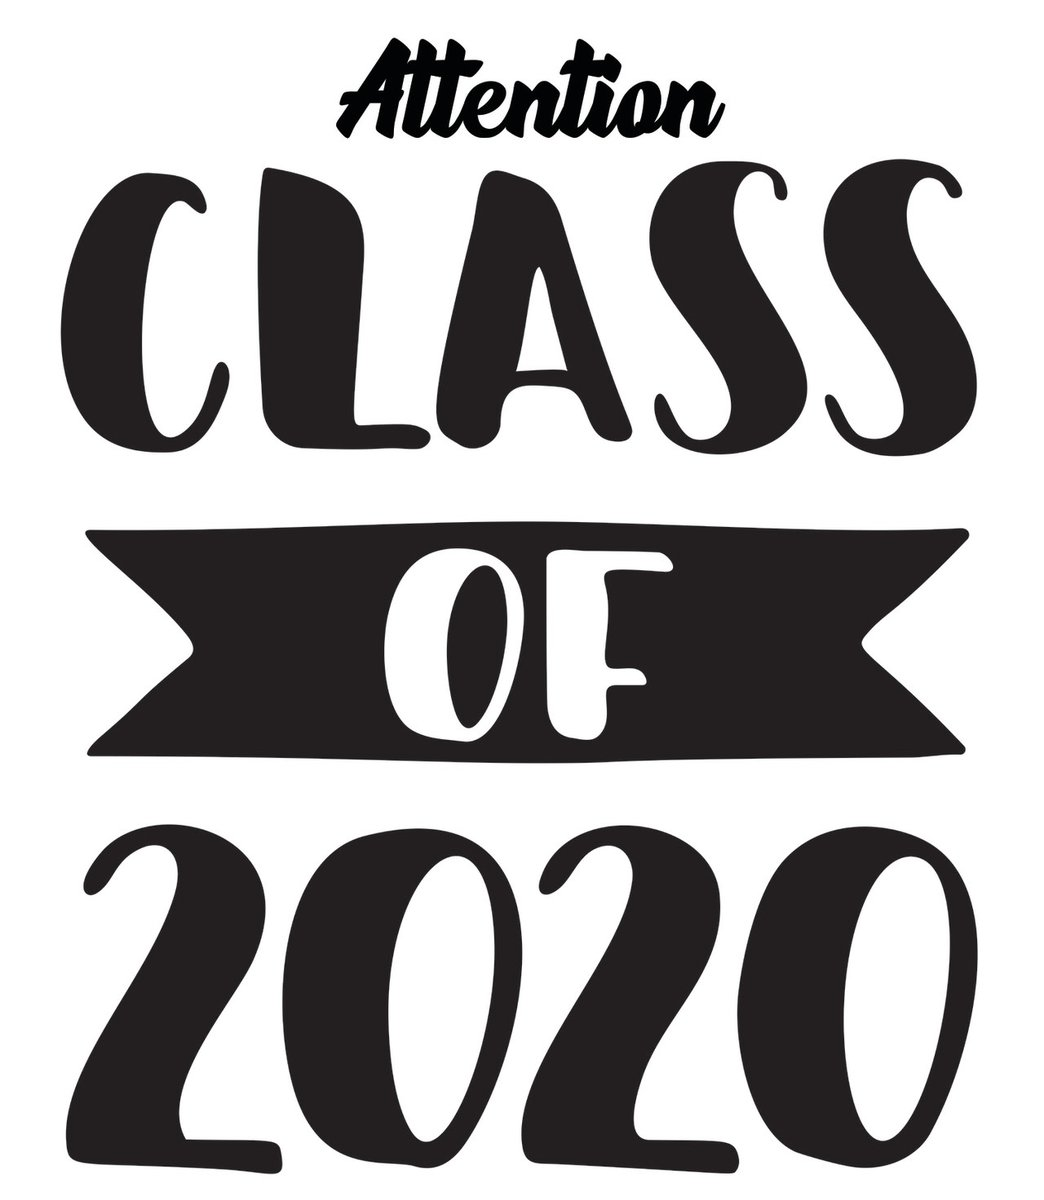 Birdville Isd On Twitter Attention Bisd Seniors Check In At Https T Co Kaqwf0i0b4 For The Most Up To Date Information On Graduation 2020